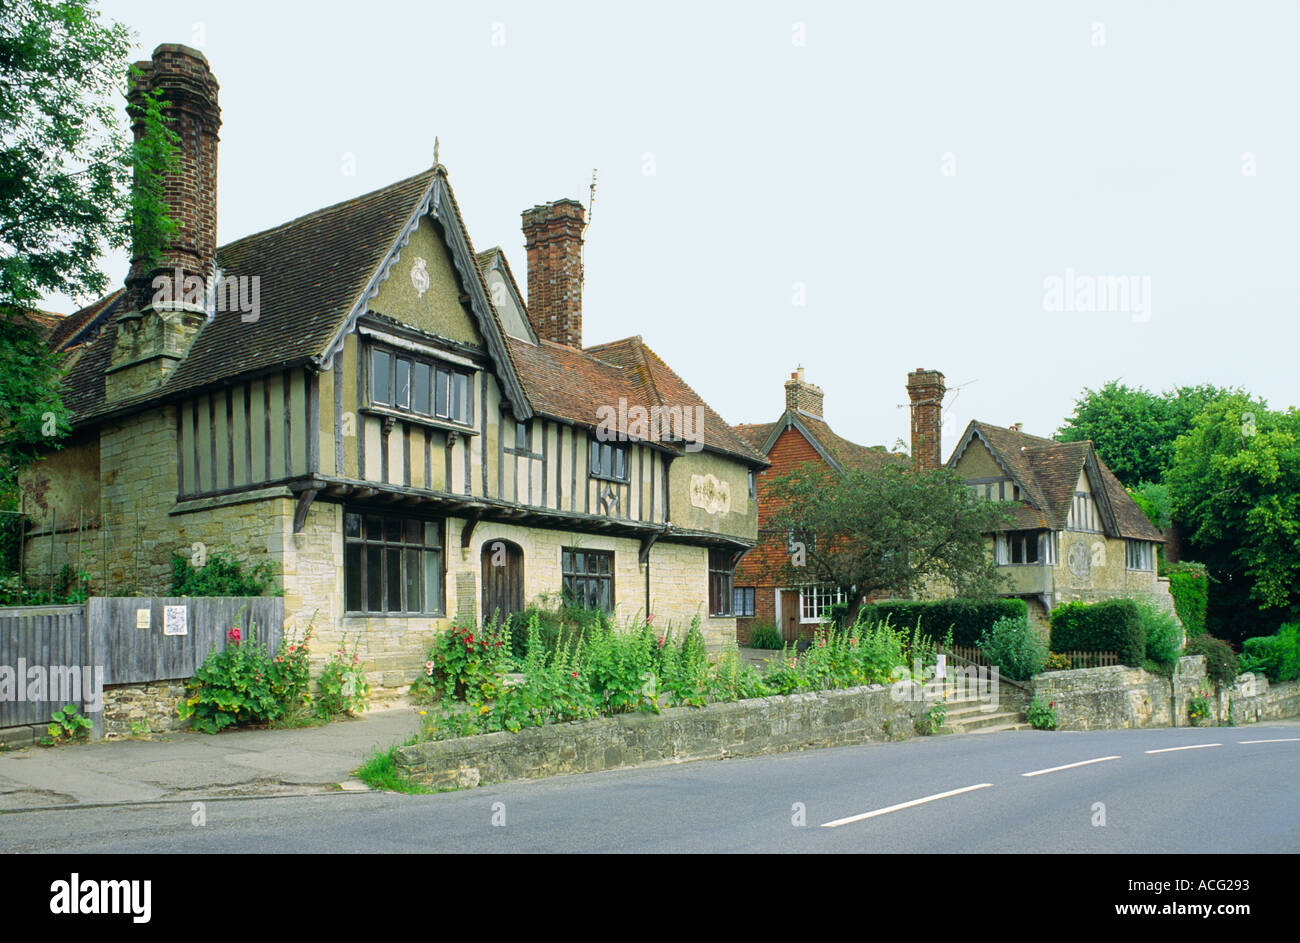 Traditional English Cottage Houses In The Village Of Penshurst Kent Southeast England UK